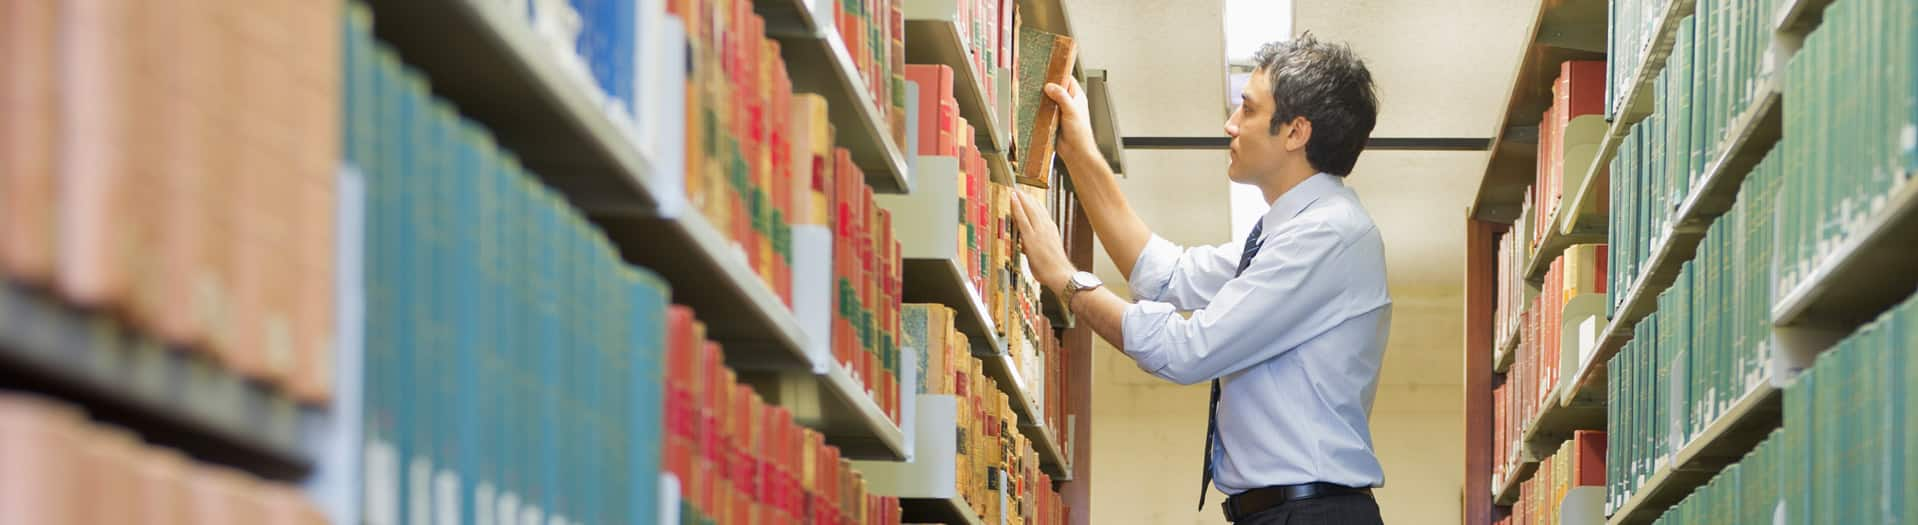 A man putting books back in a library shelf